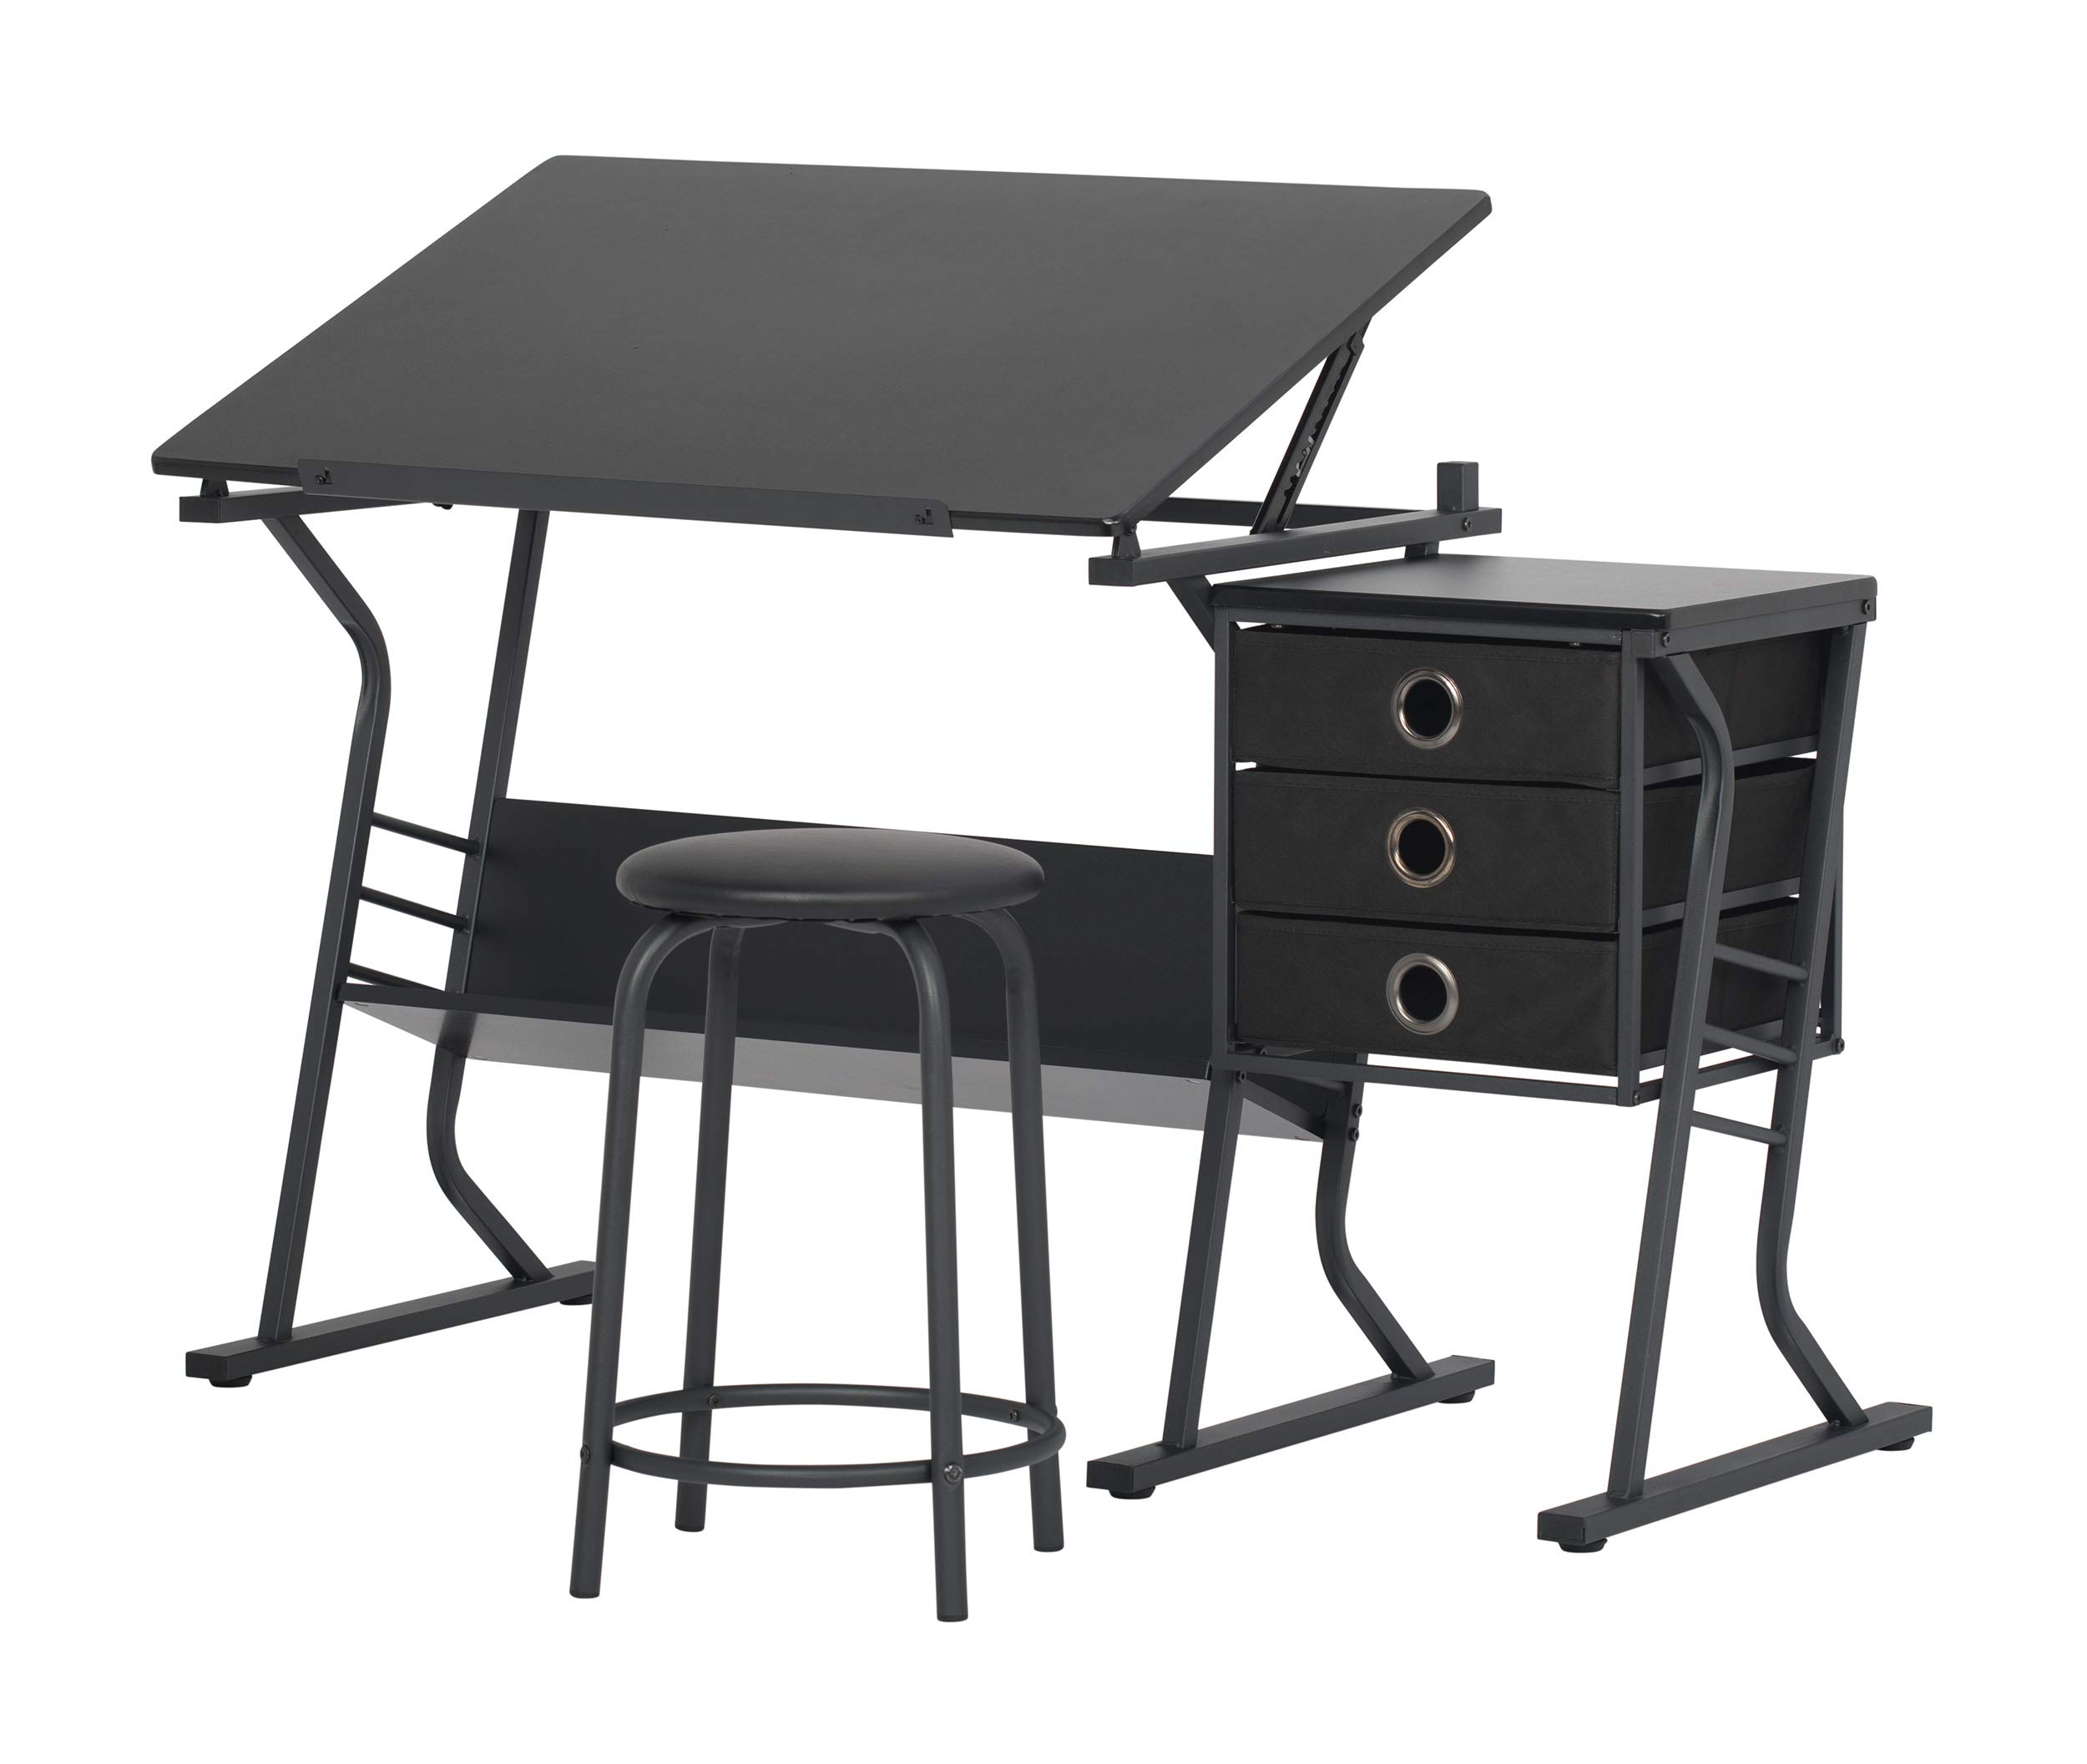 STUDIO DESIGNS Eclipse Craft Center in Black / Black 13365 by SD STUDIO DESIGNS